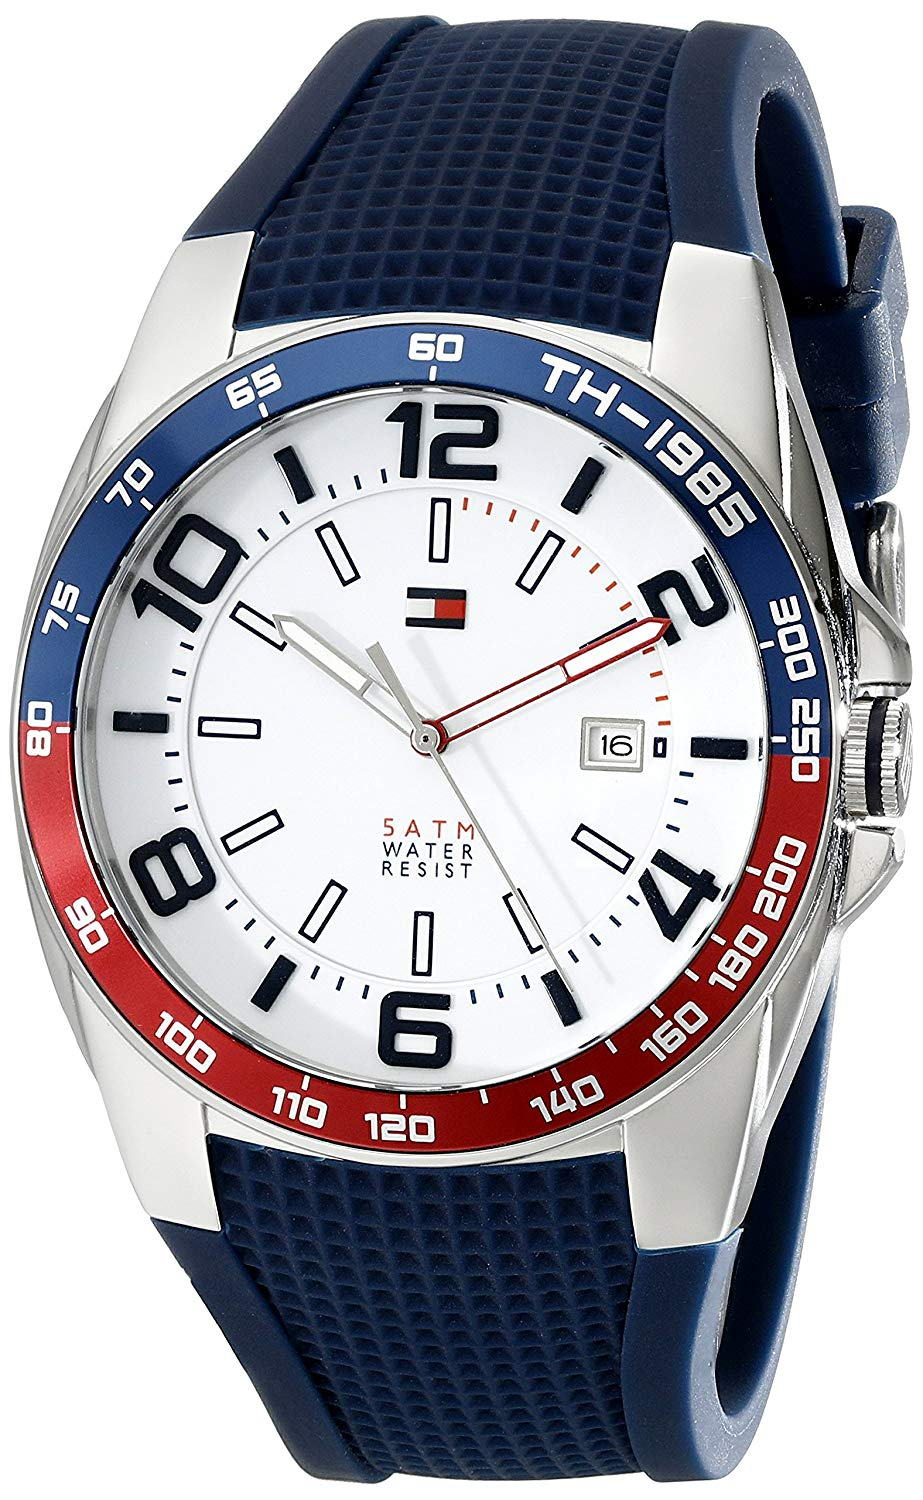 Tommy Hilfiger Sport Watches amazon.com: tommy hilfiger menu0027s 1790885 stainless steel watch with blue  silicone band: tommy hilfiger: watches HCJVBHC